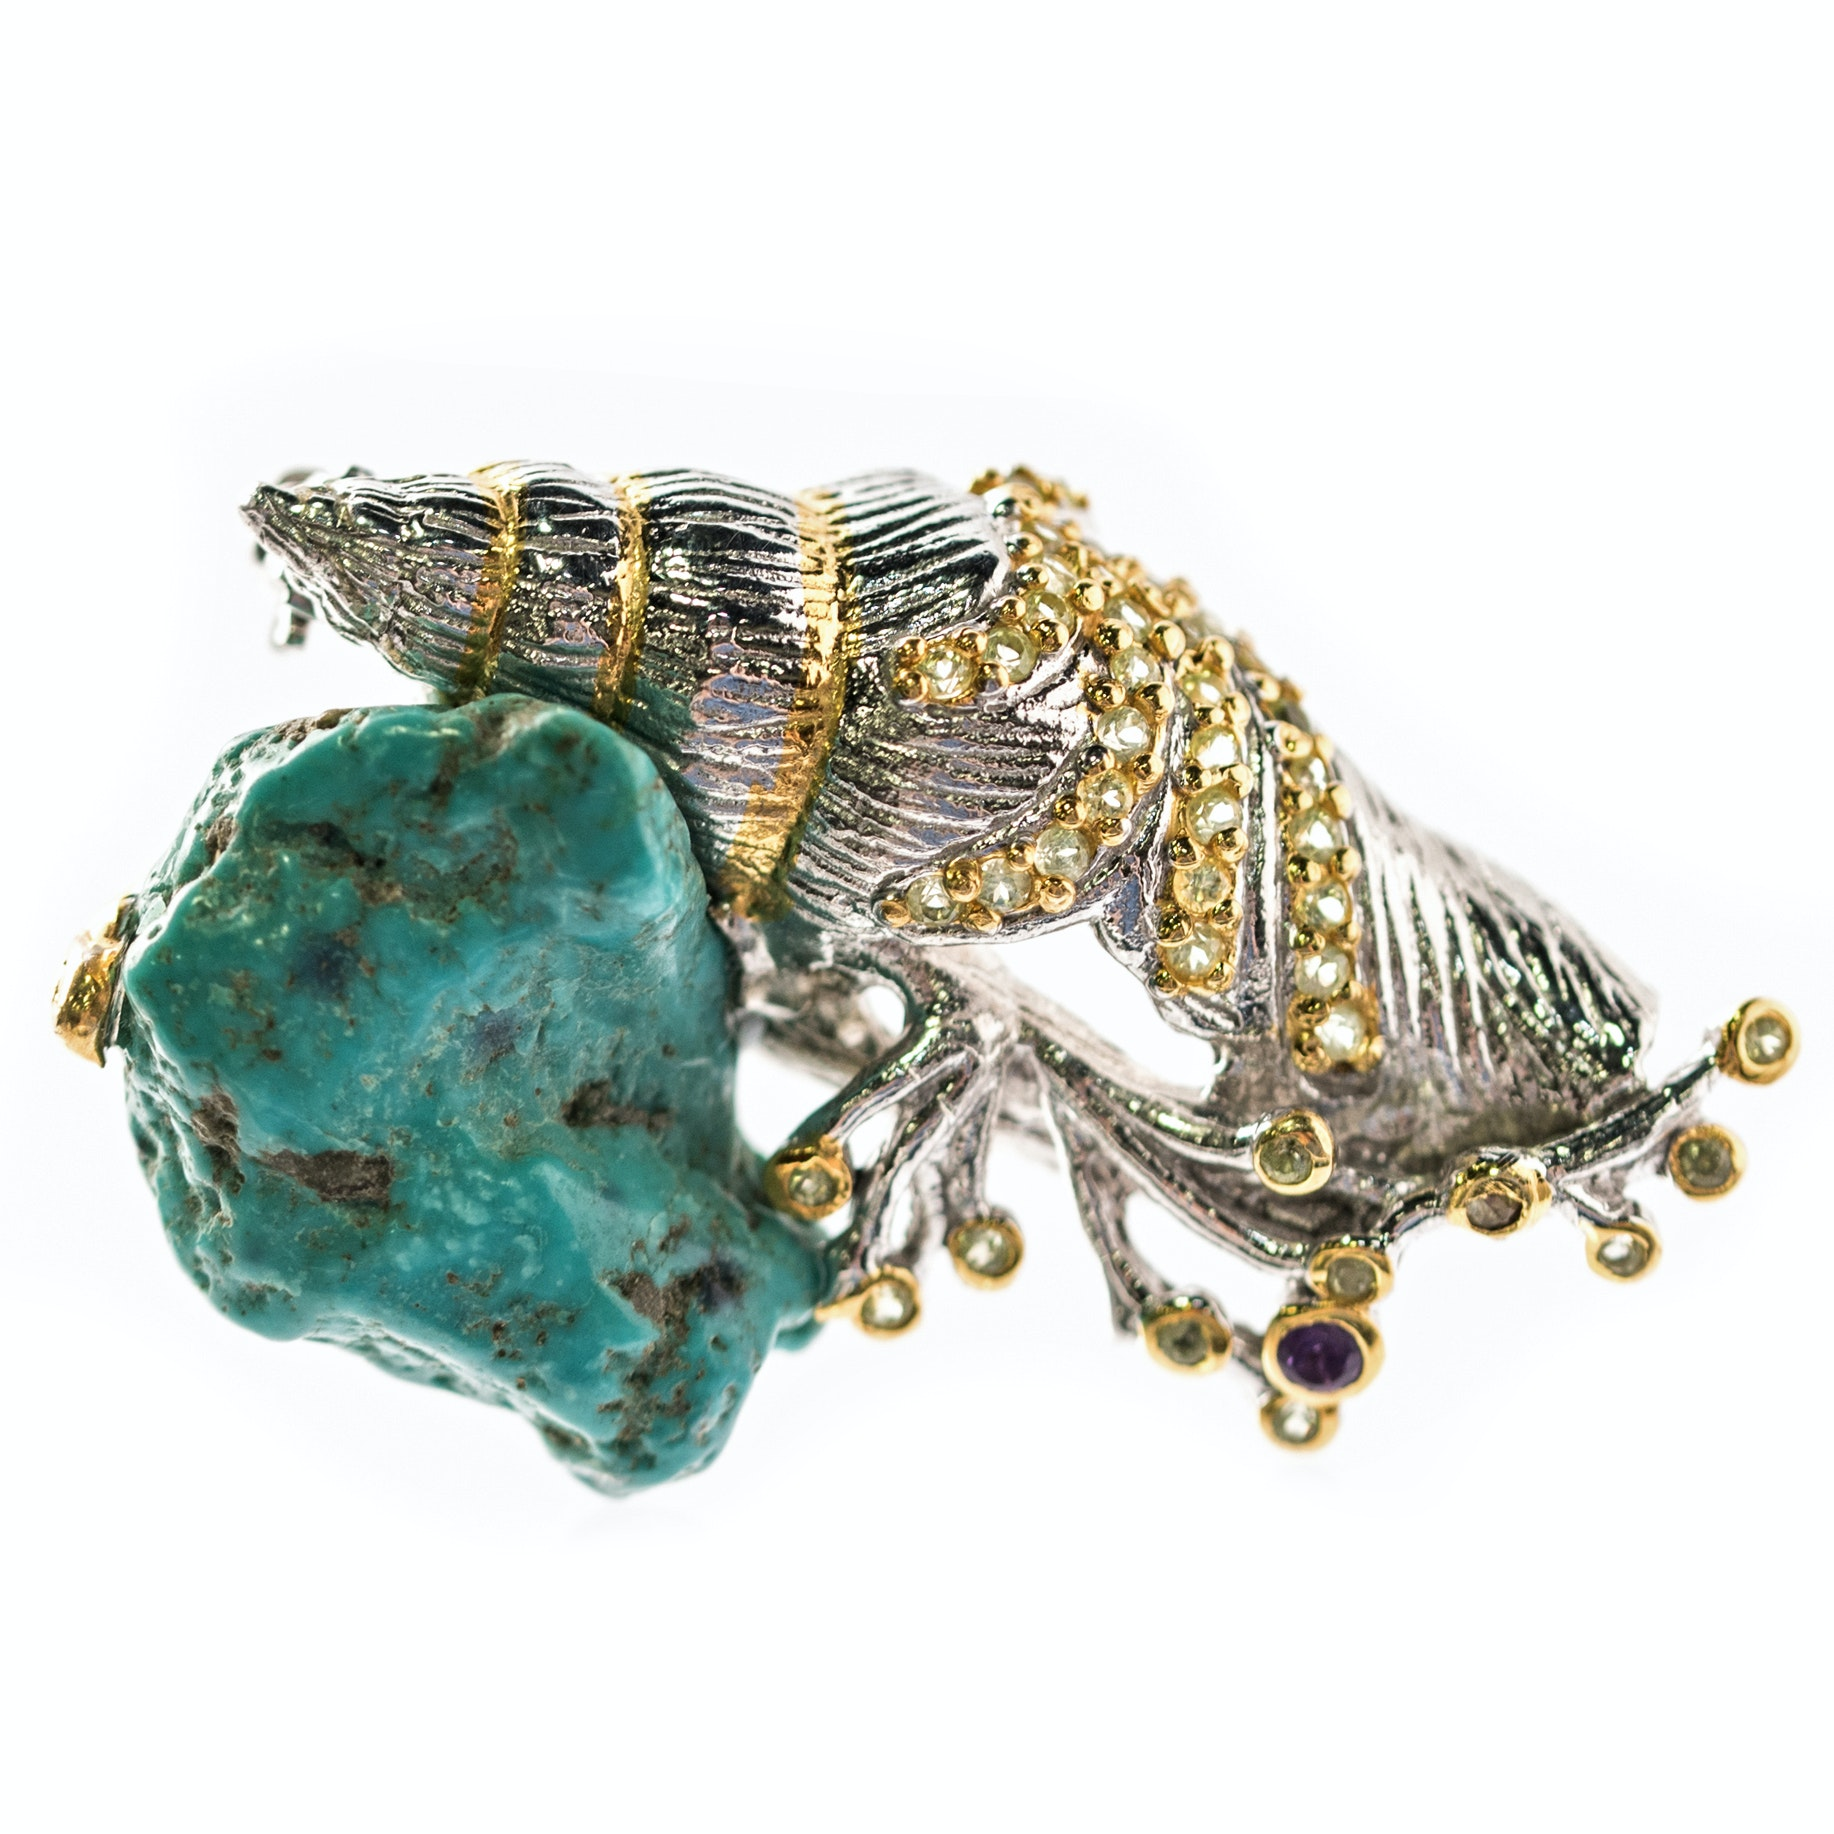 Sterling Silver, Turquoise Nugget, 1.08 CTW Quartz, and Amethyst Shell Brooch